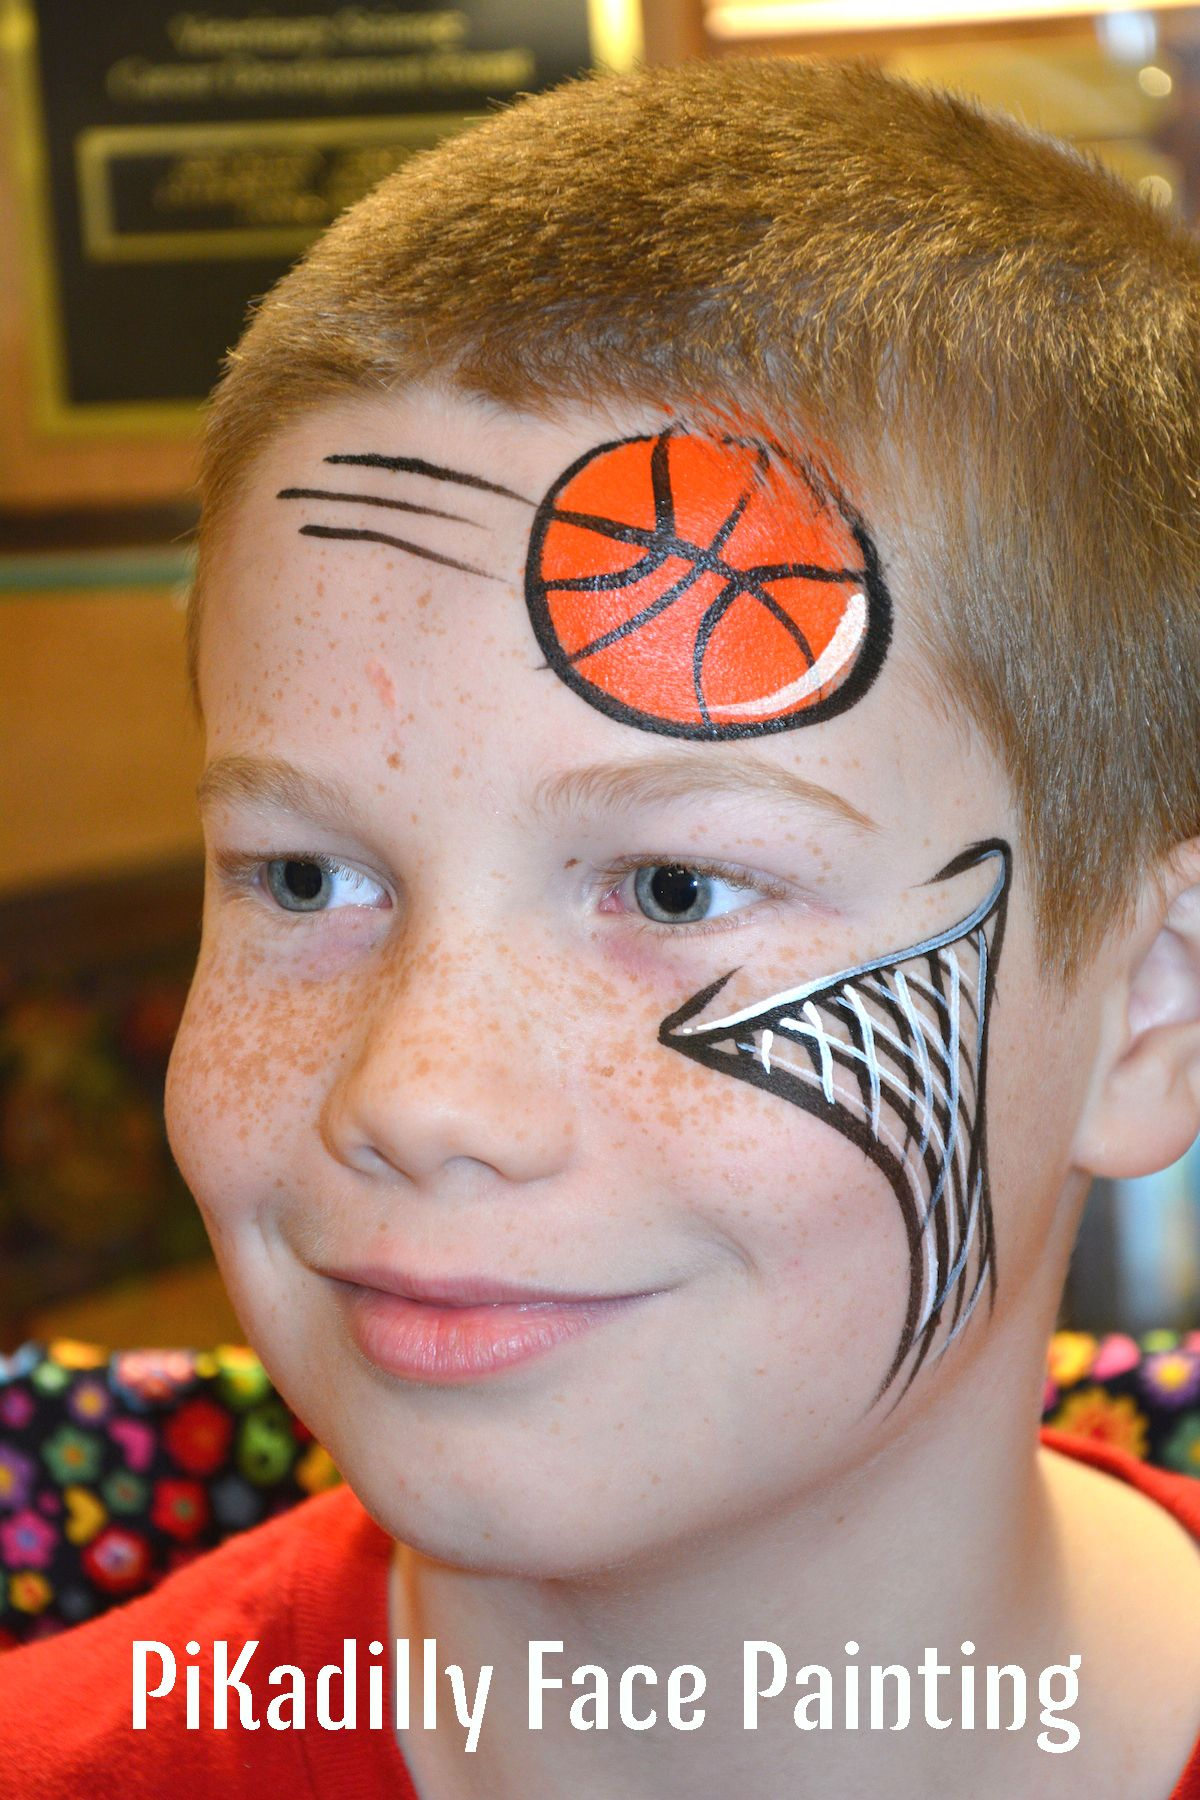 Basketball and Net Design by PiKadilly Face Painting ...